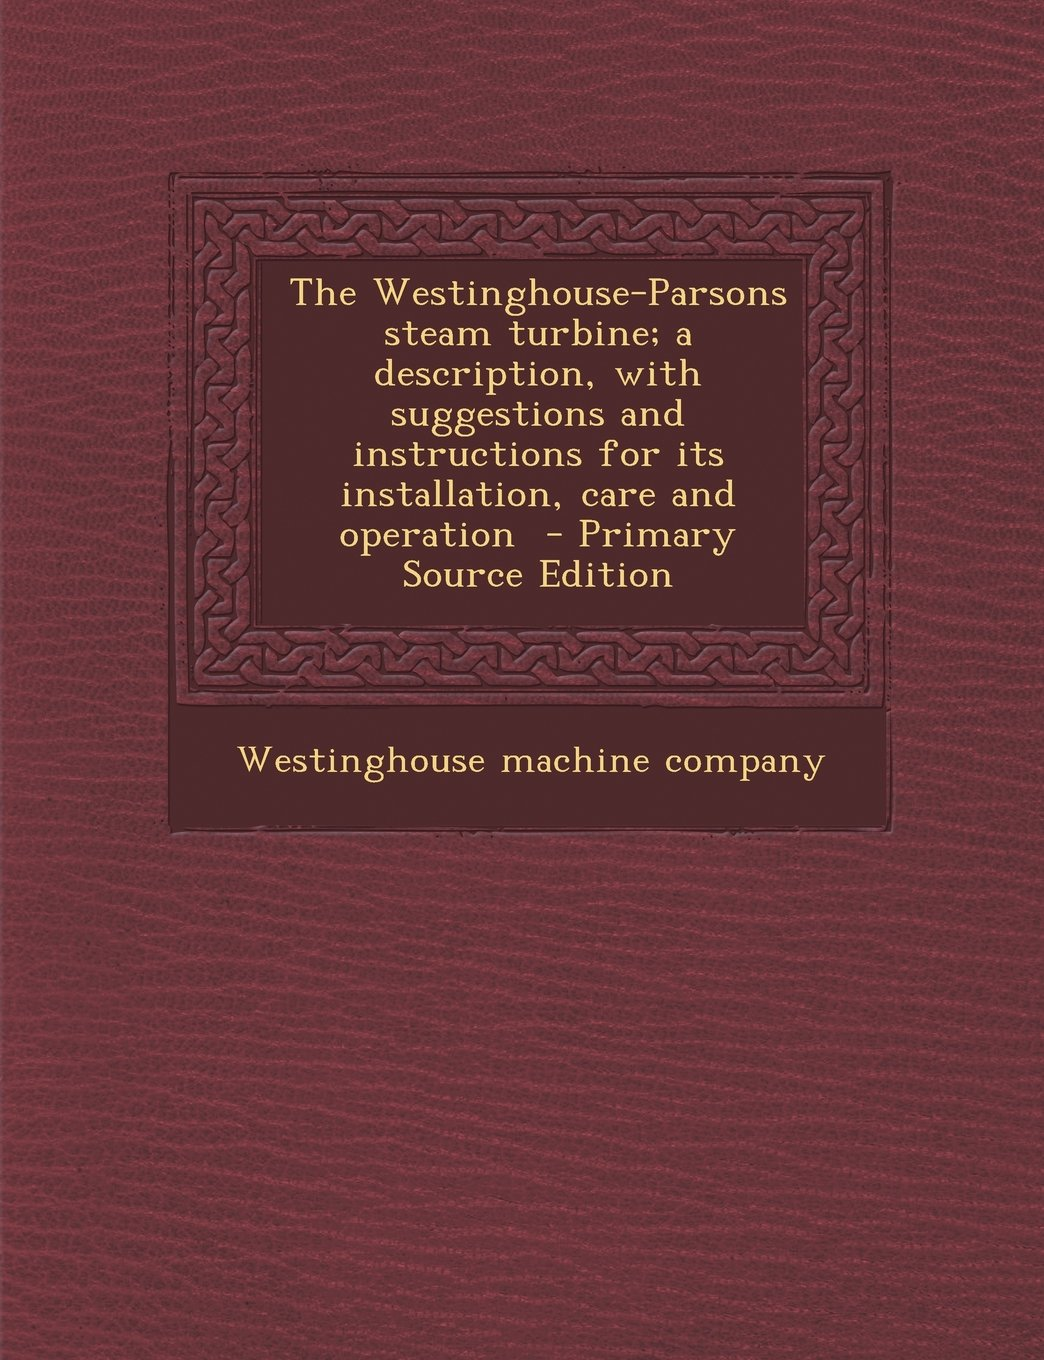 The Westinghouse-Parsons steam turbine; a description, with suggestions and instructions for its installation, care and operation PDF